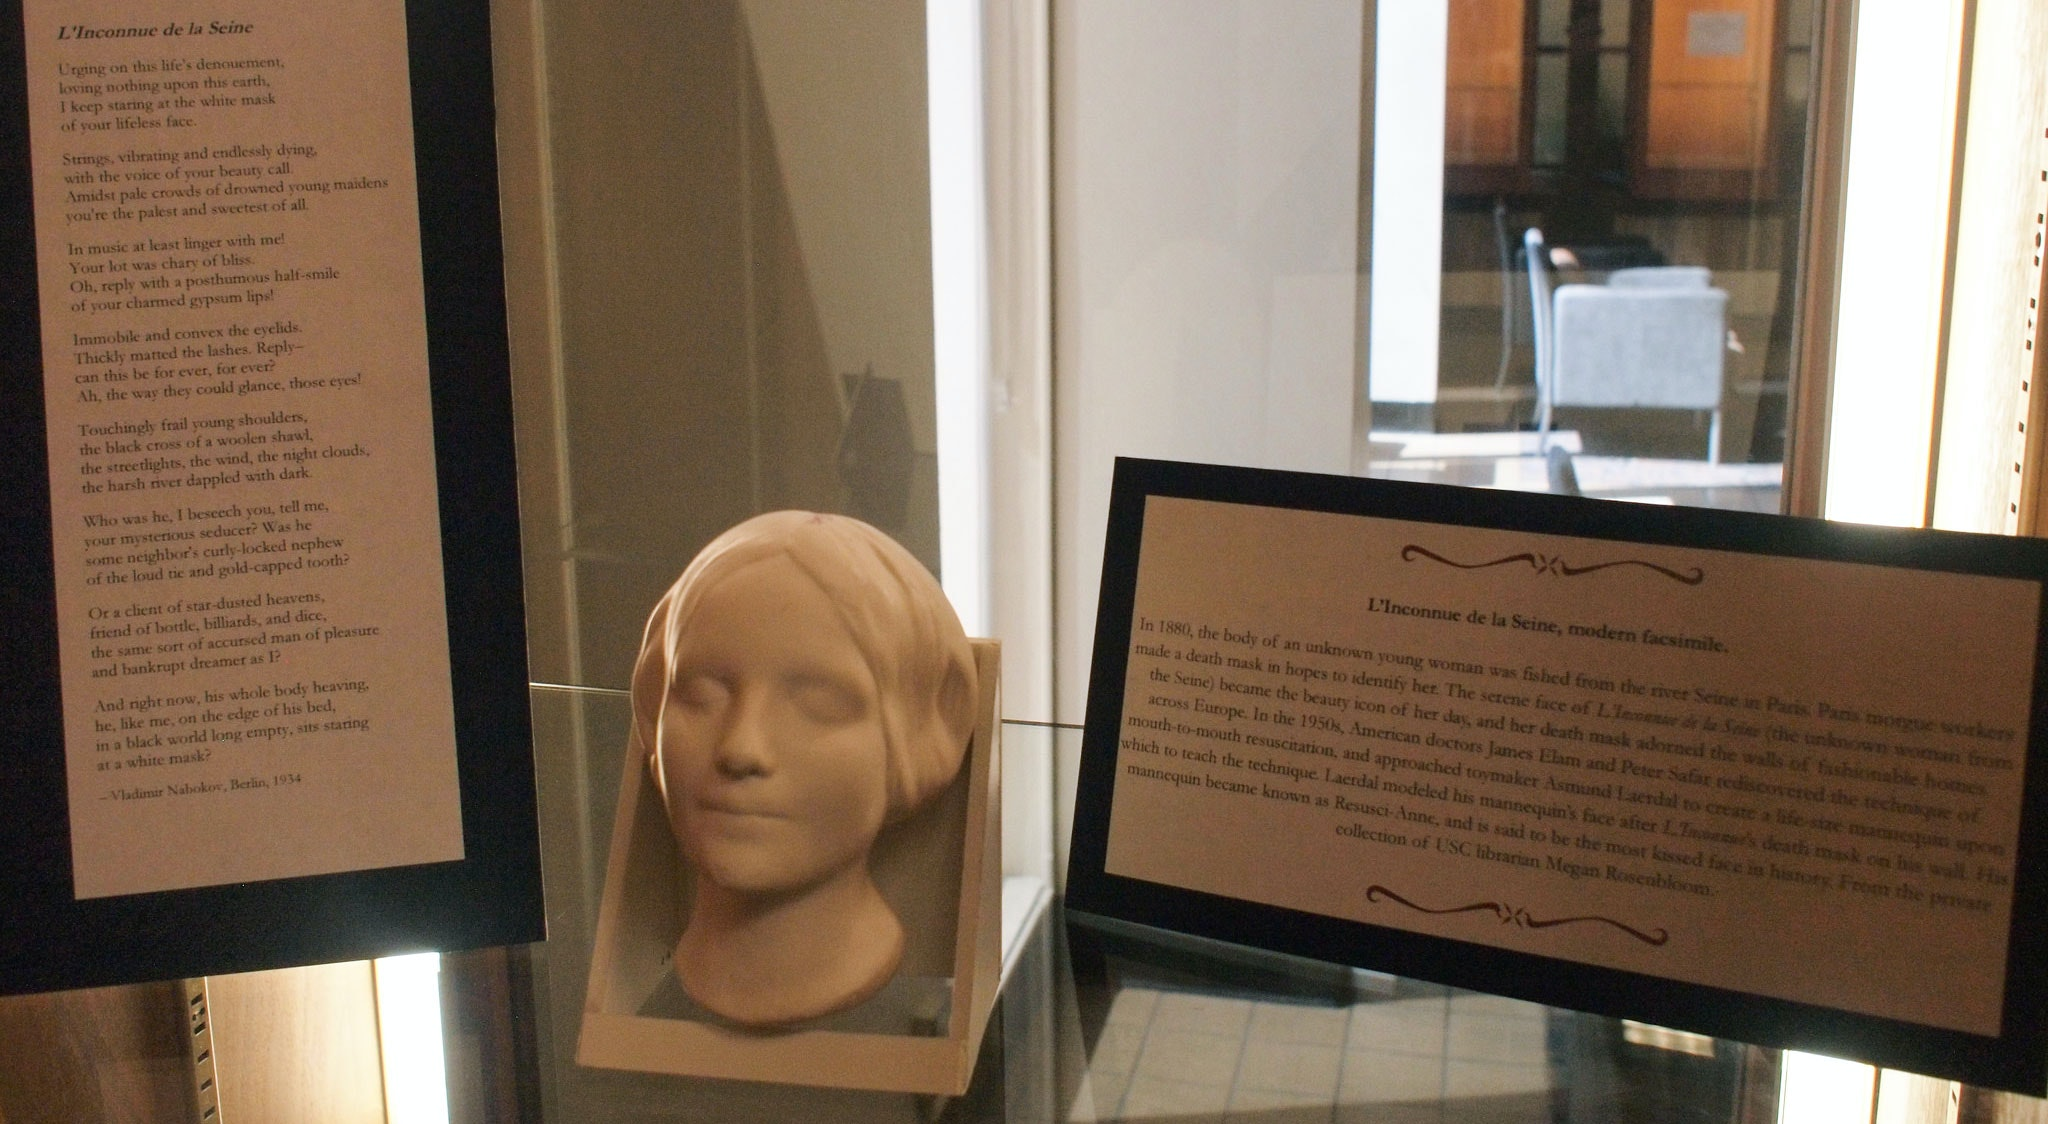 A History of Resuscitation exhibition at USC Norris Medical Library L'Inconnue de la Seine, modern facsimile